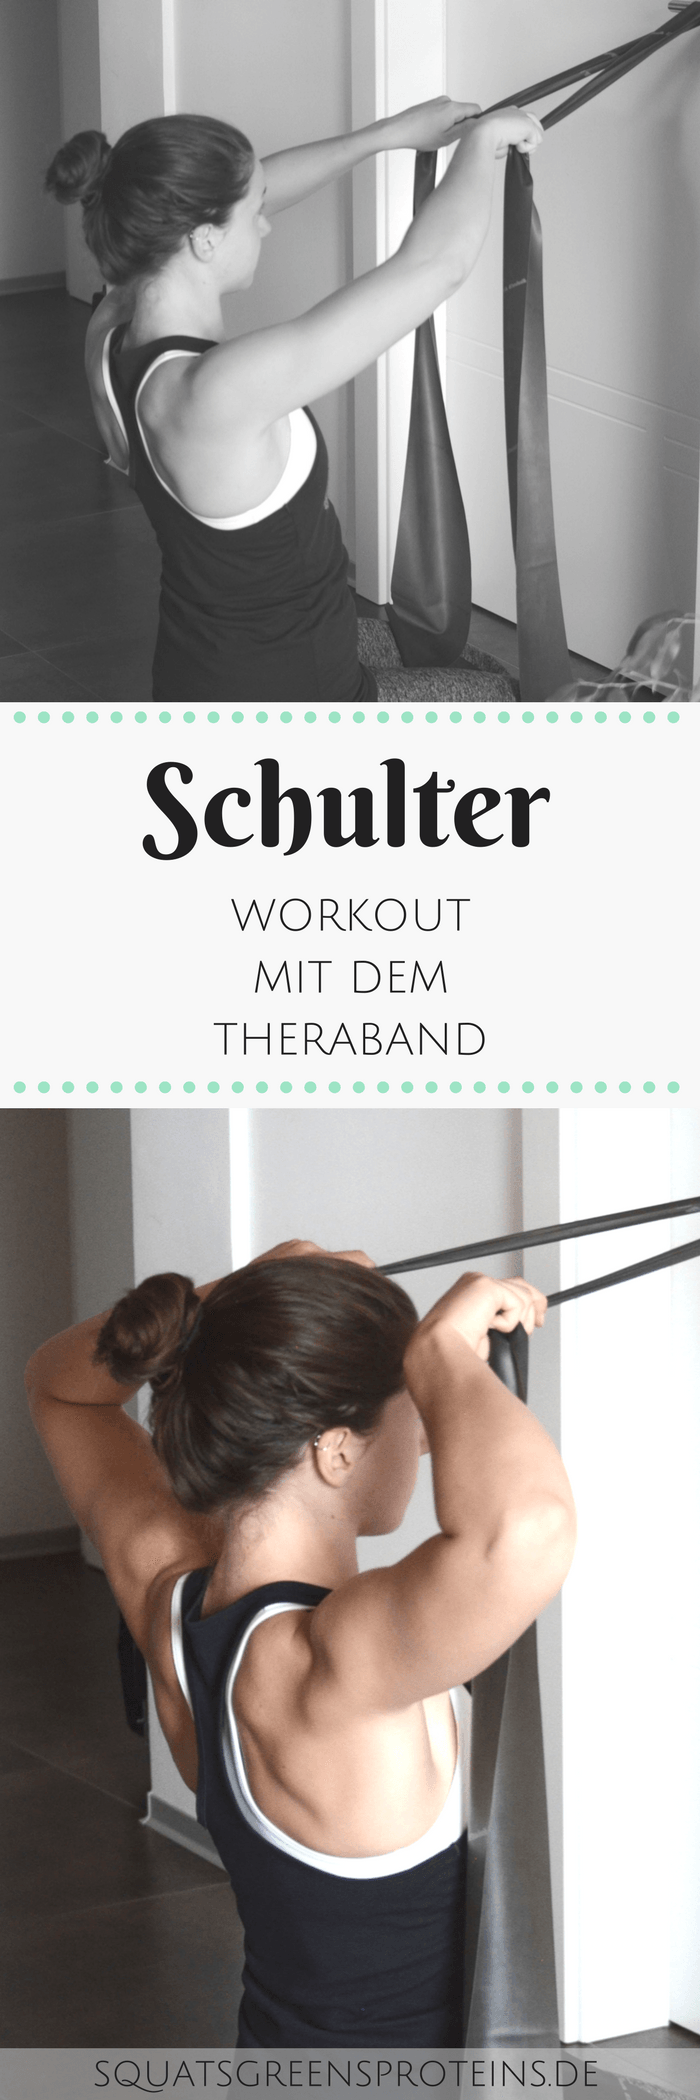 #theraband #schulter #proteins #anfnger #workout #squats #greens #mit #demAnfänger Schulter Workout...